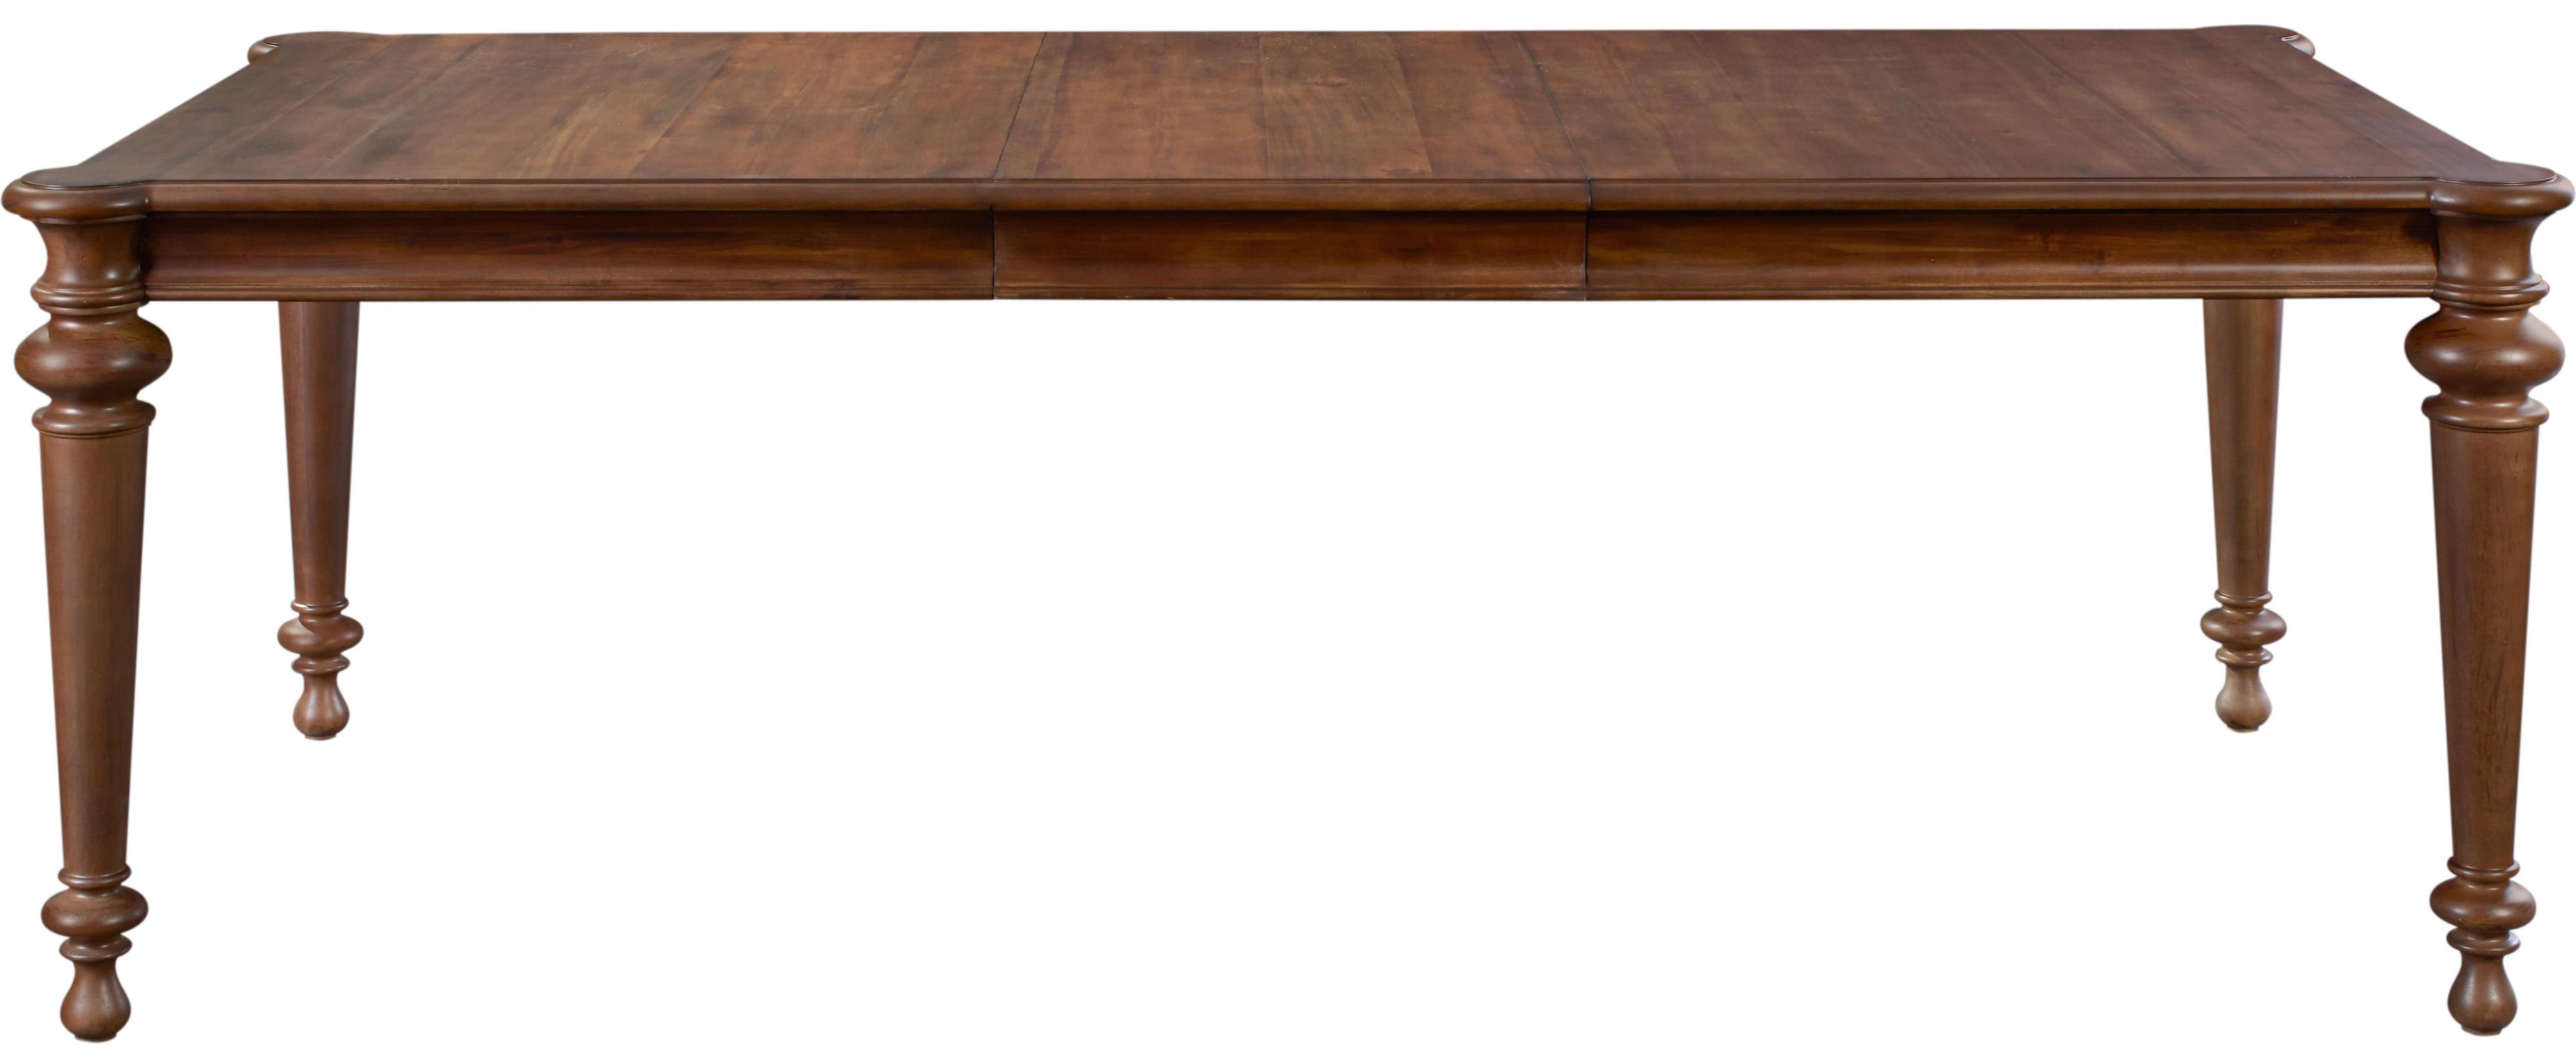 Broyhill Furniture Cascade Rectangle Leg Table - Item Number: 4940-532